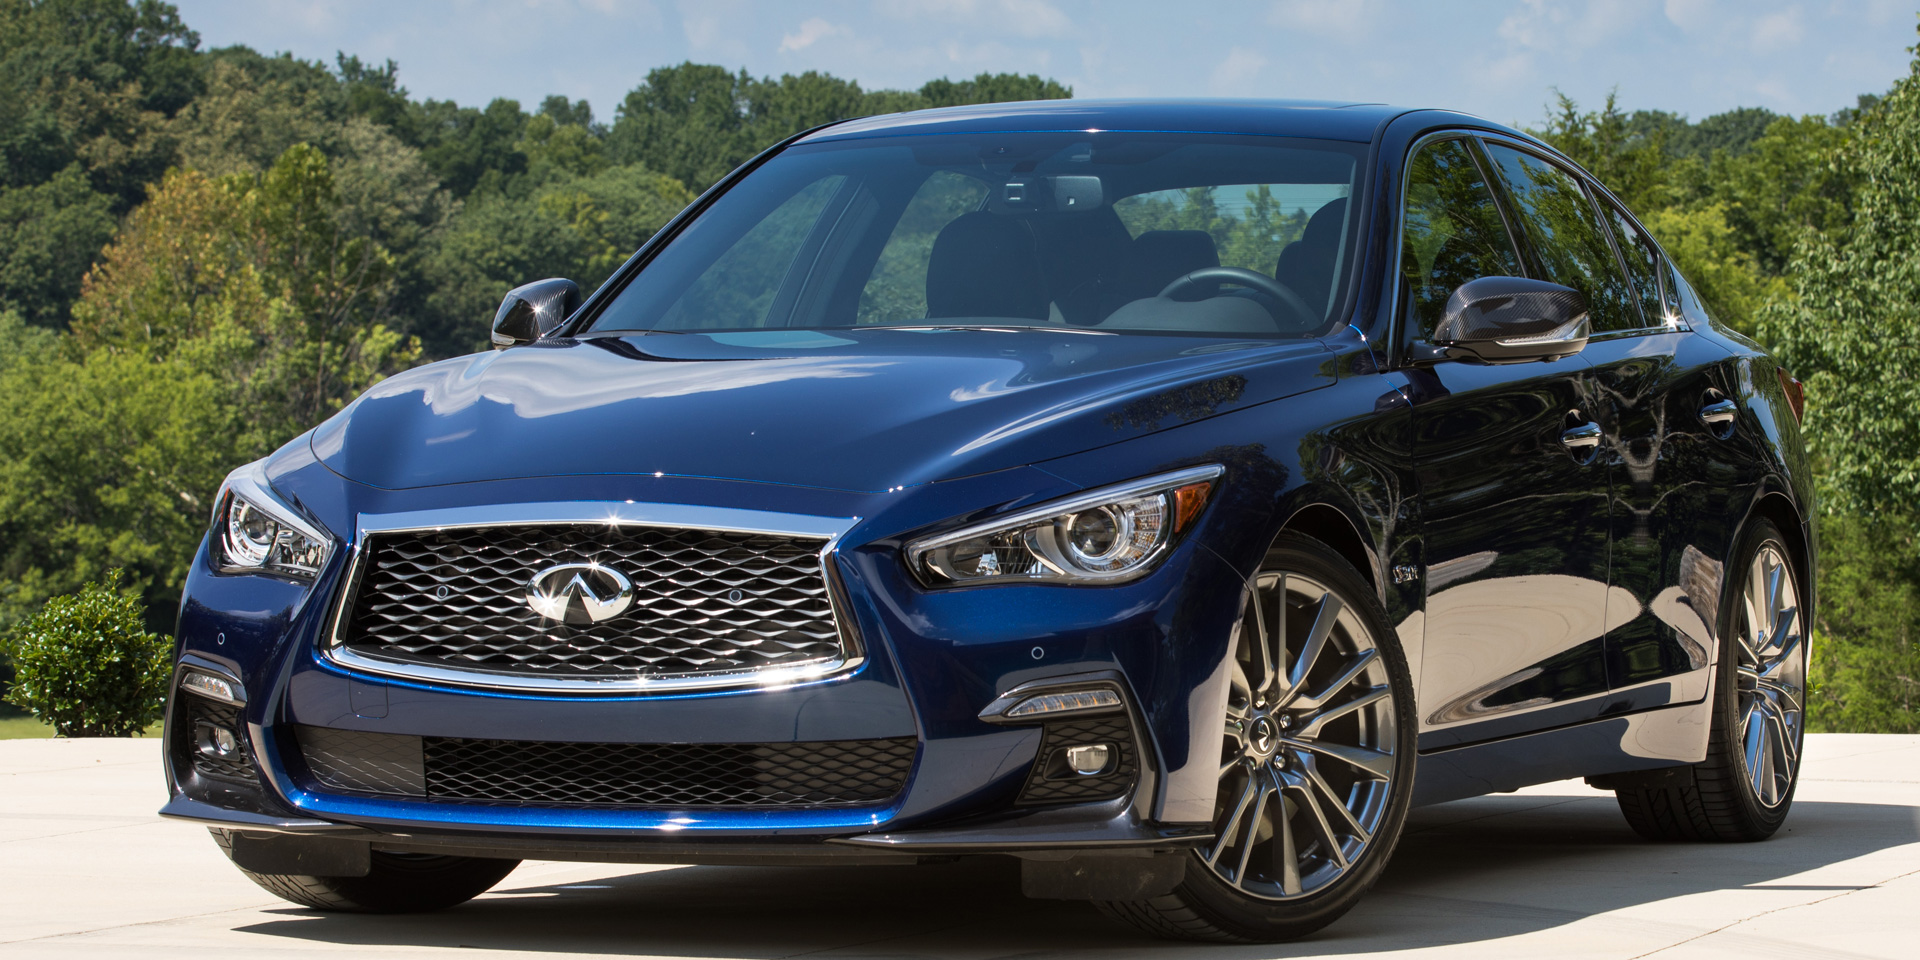 2018 Infiniti Q50 Vehicles On Display Chicago Auto